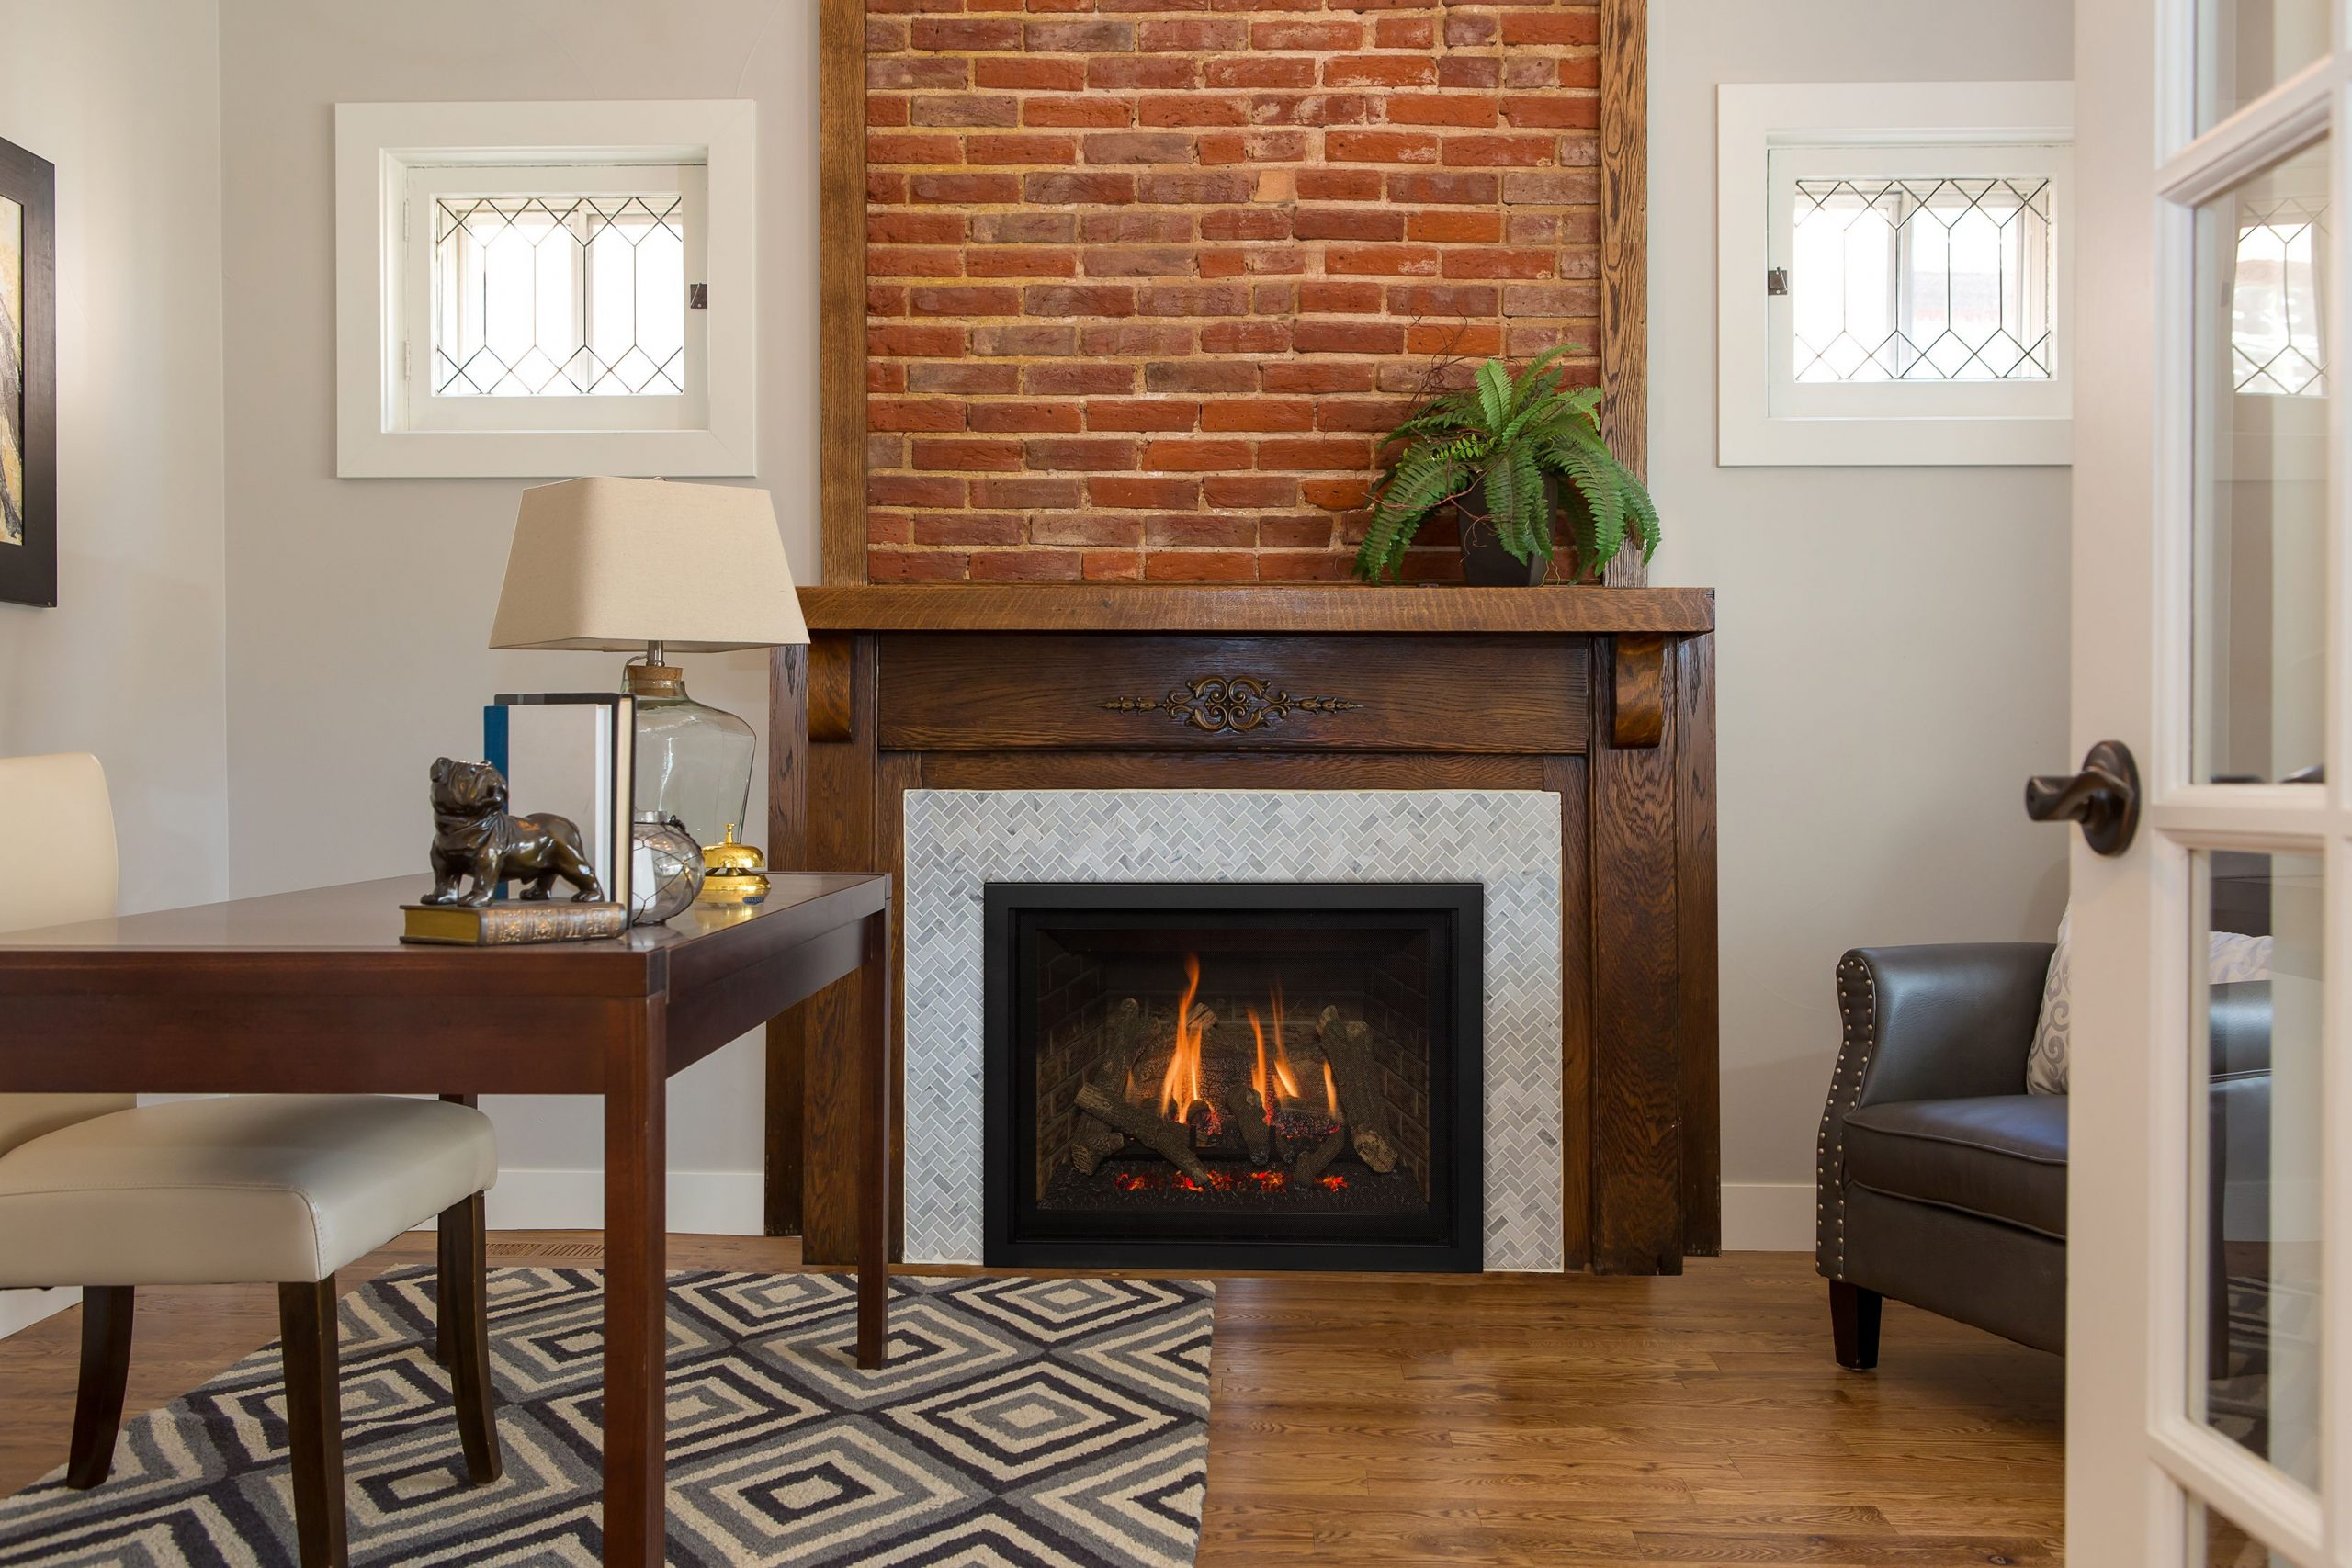 Which Rooms Can I Install My Fireplace In?